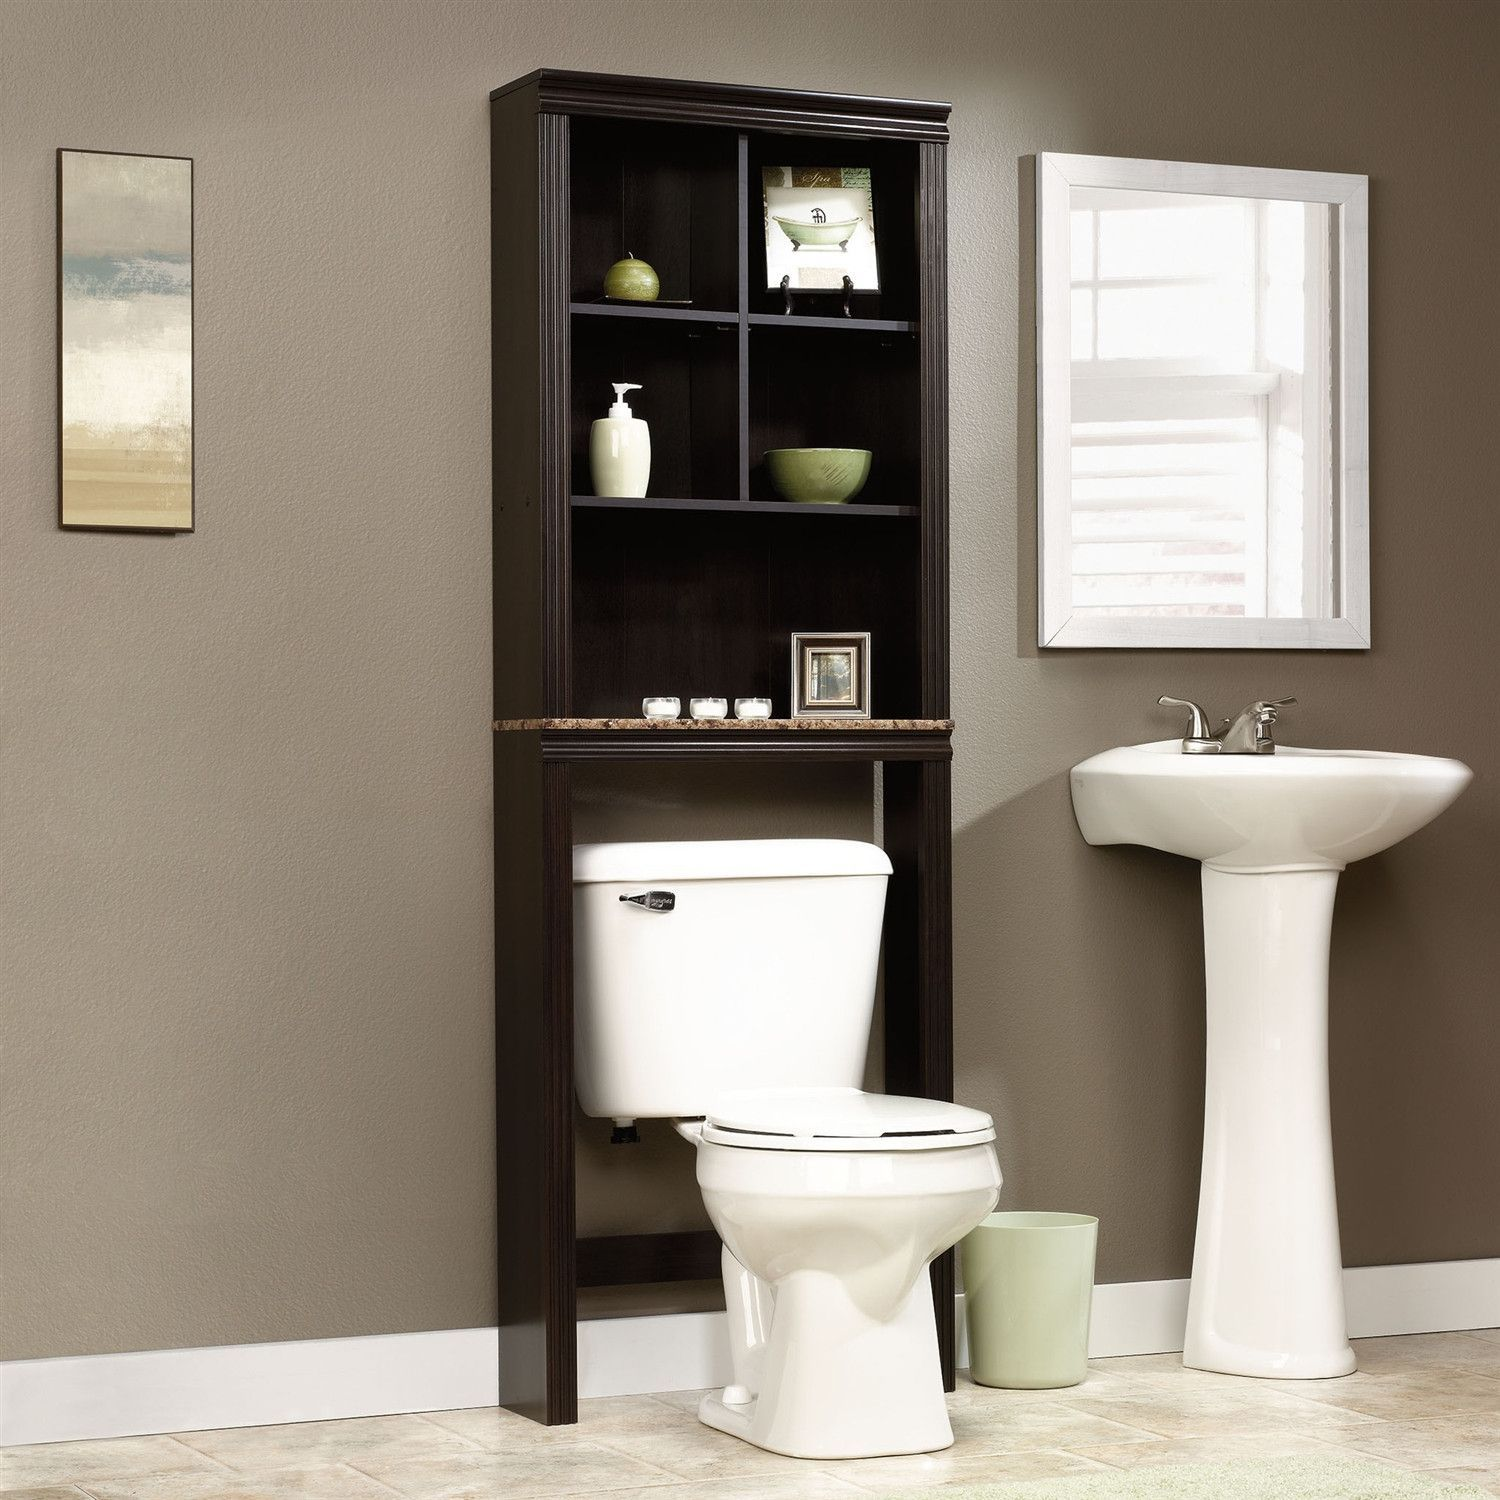 Etagere Badezimmer Over Toilet Bathroom Storage Cabinet Shelves Cubby Etagere House